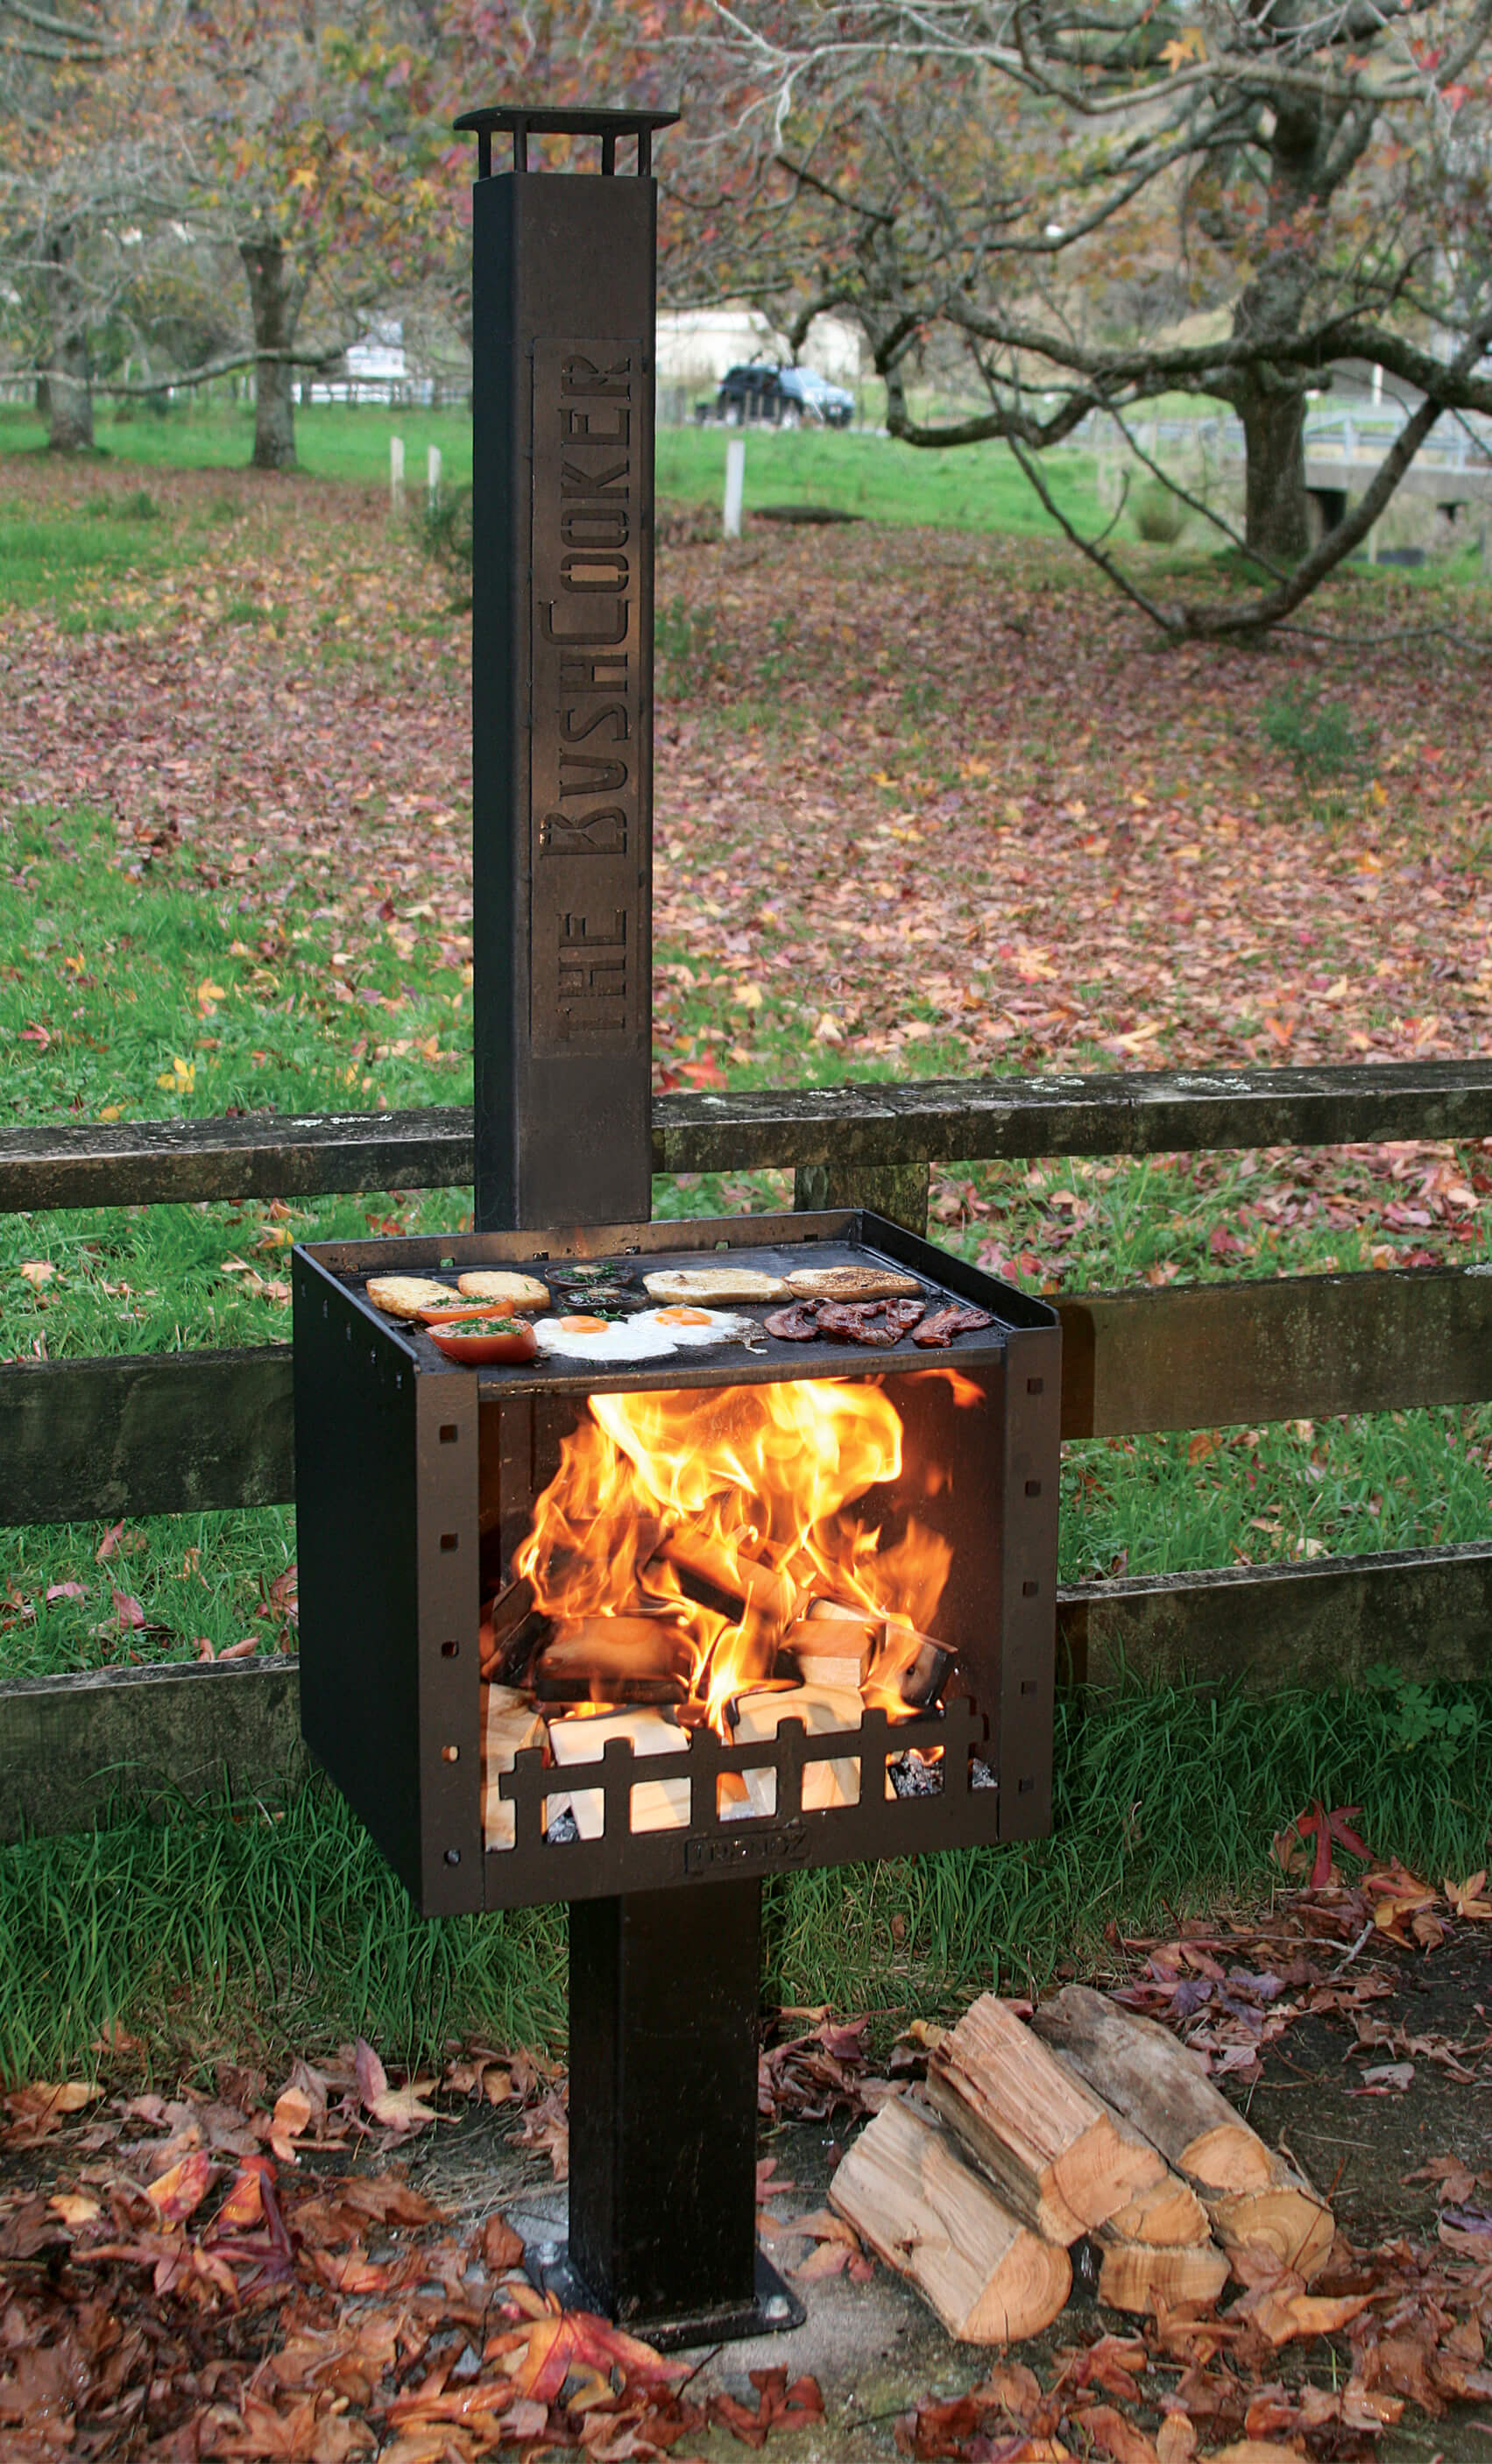 Bushcooker outdoor fireplace